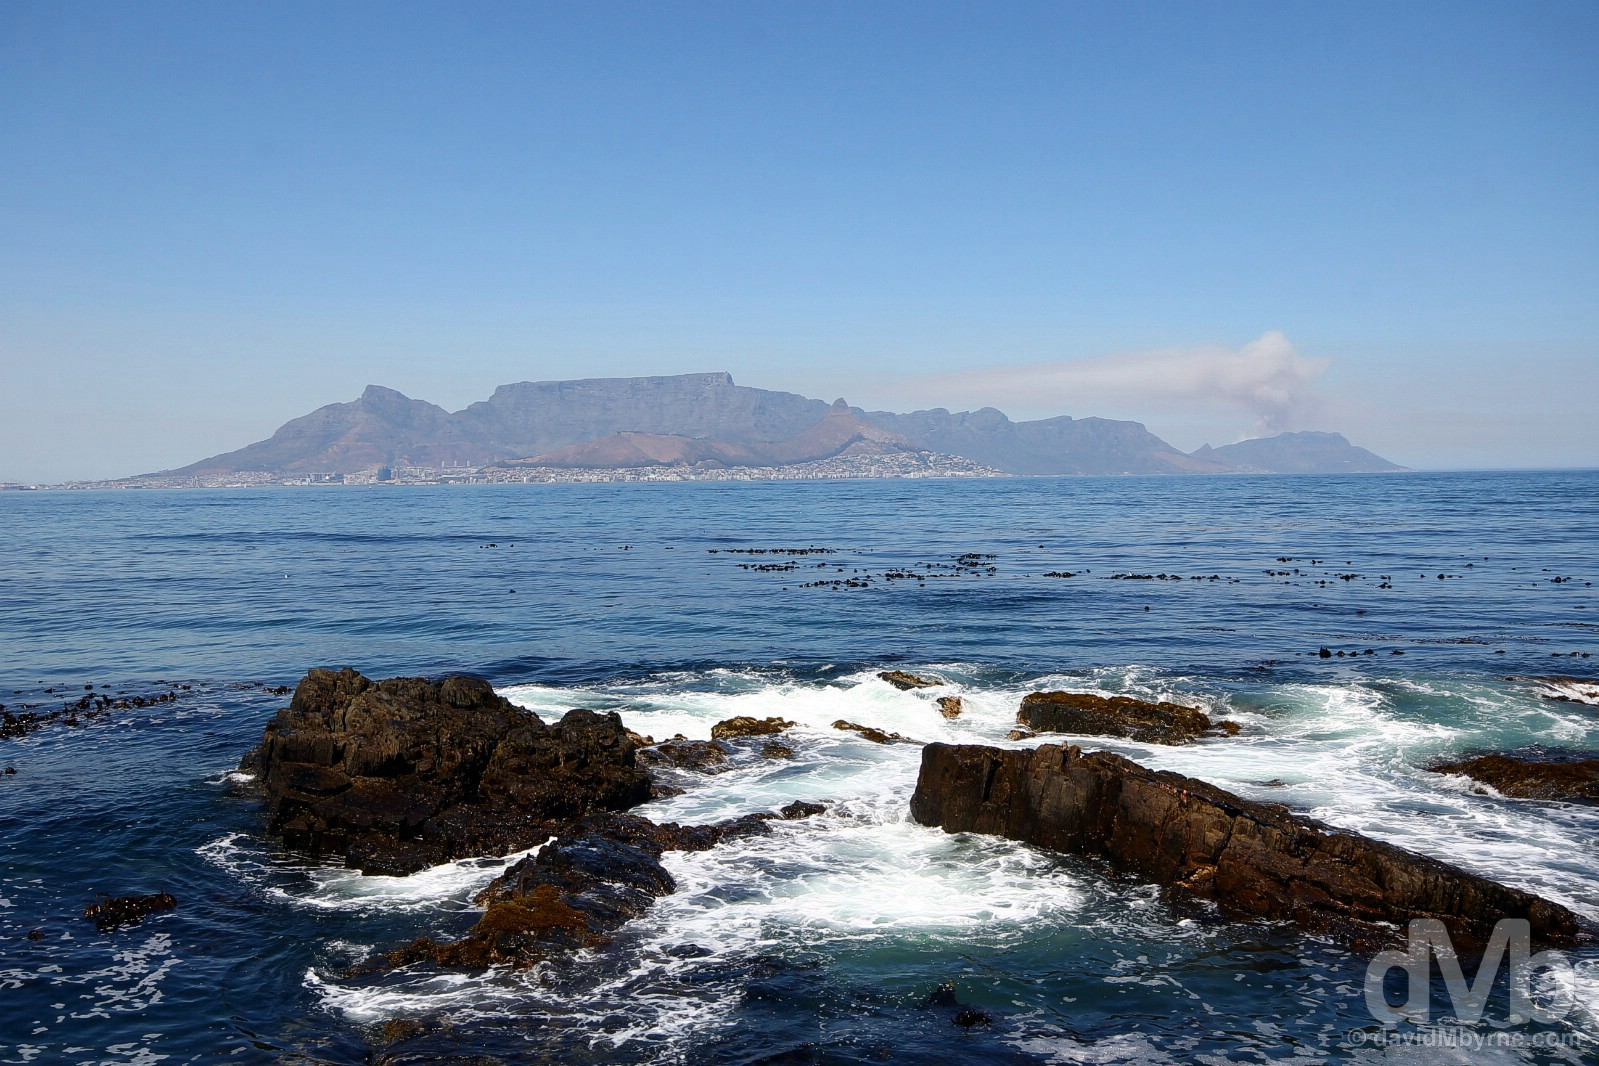 Cape Town & The Cape Peninsula as seen from the shores of Robben Island across Table Bay, Western Cape, South Africa. February 22, 2017.